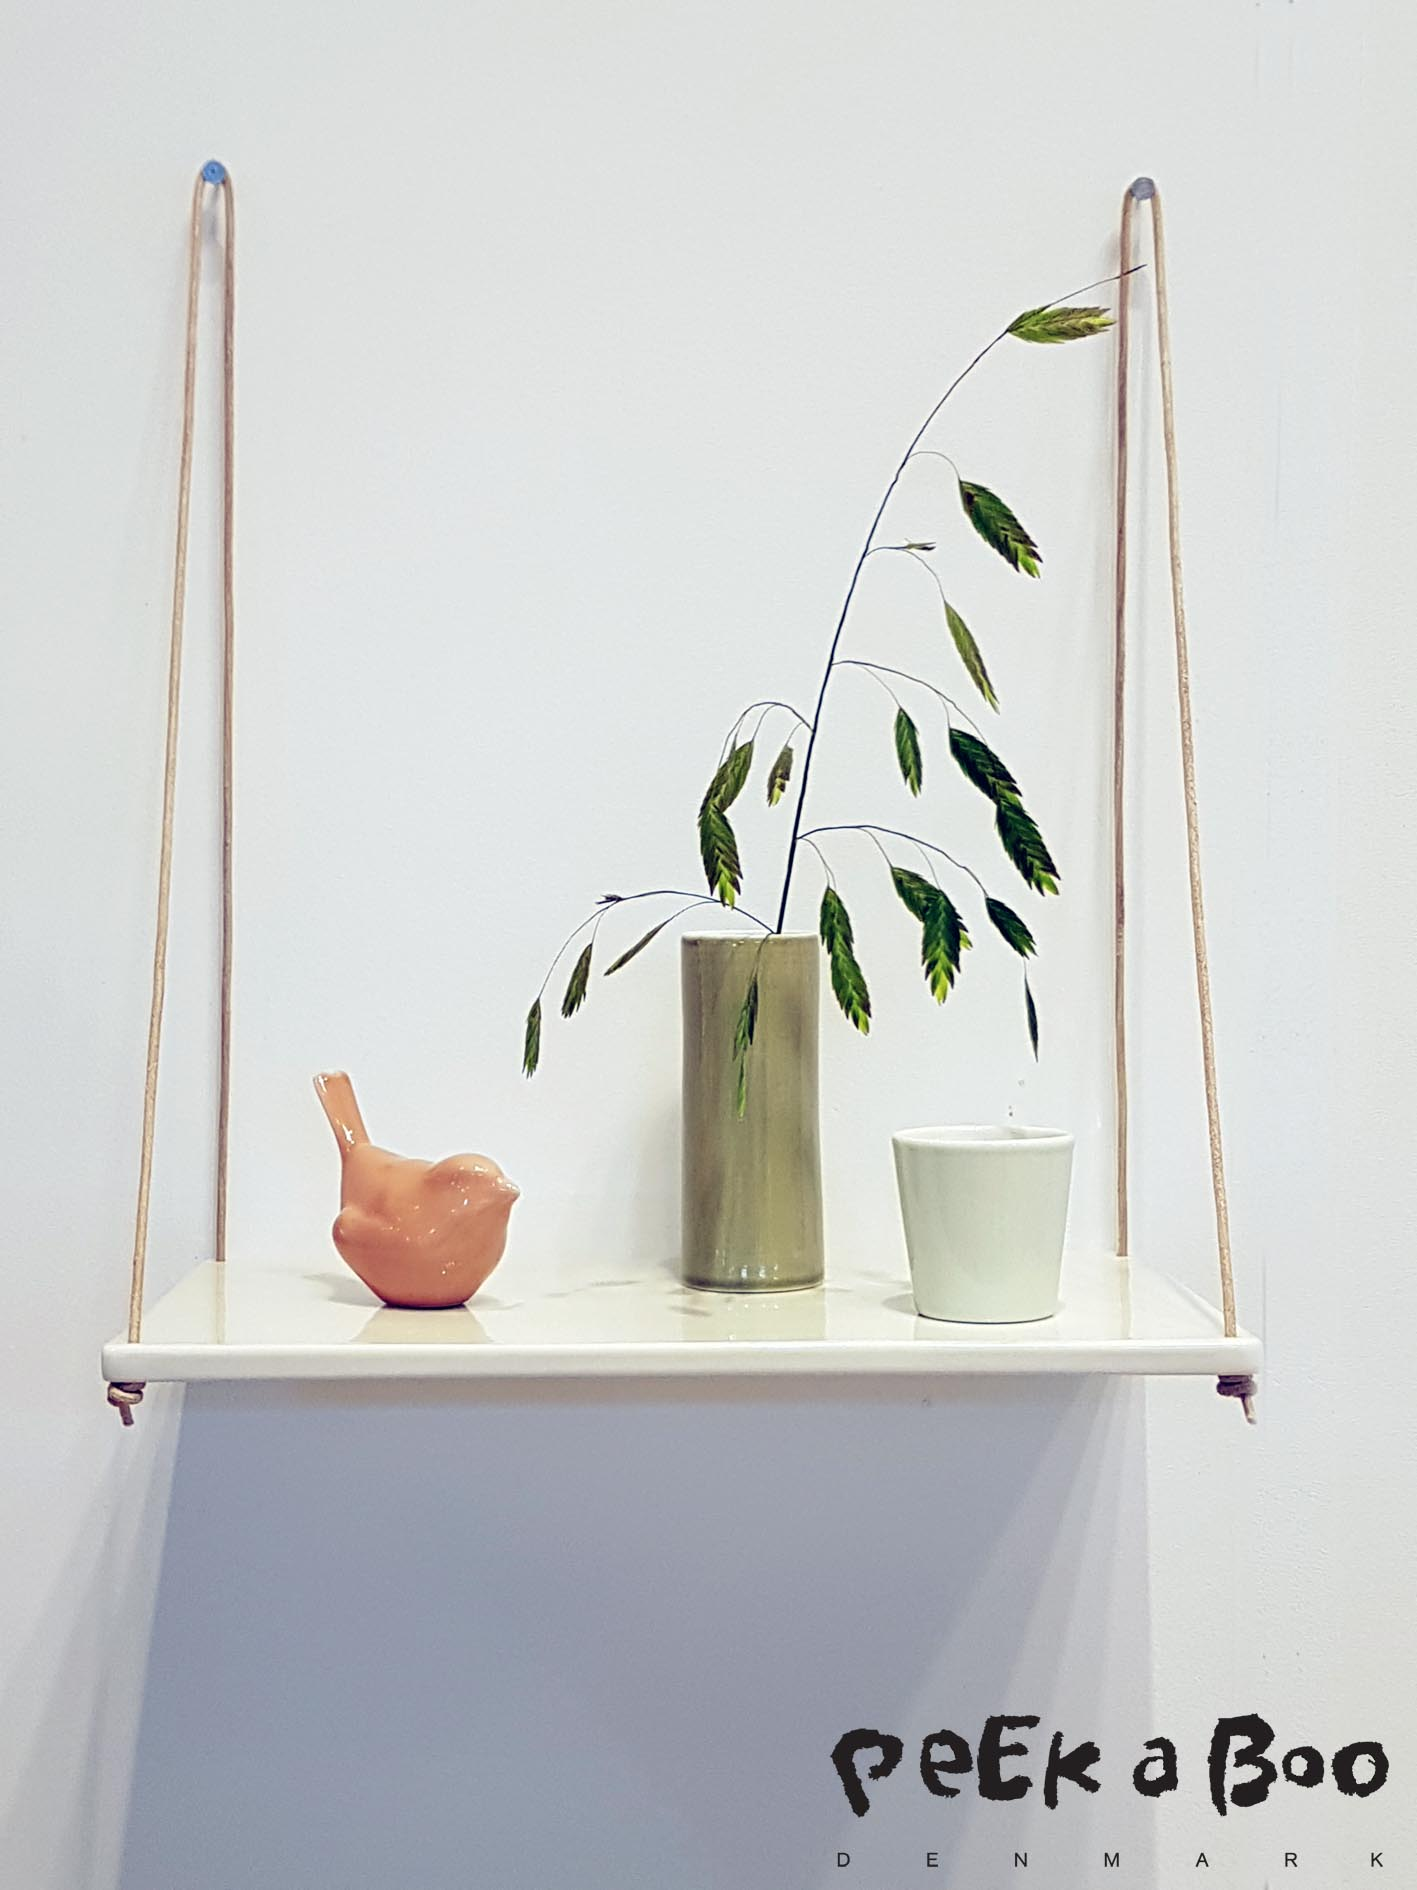 The Danish Ceramic designer Anne Black even made a shelve in ceramic hanging in thin leather straps, really delicate, and very suitable on your bathroom or kitchen where it can resist water. Seen at Northmodern.